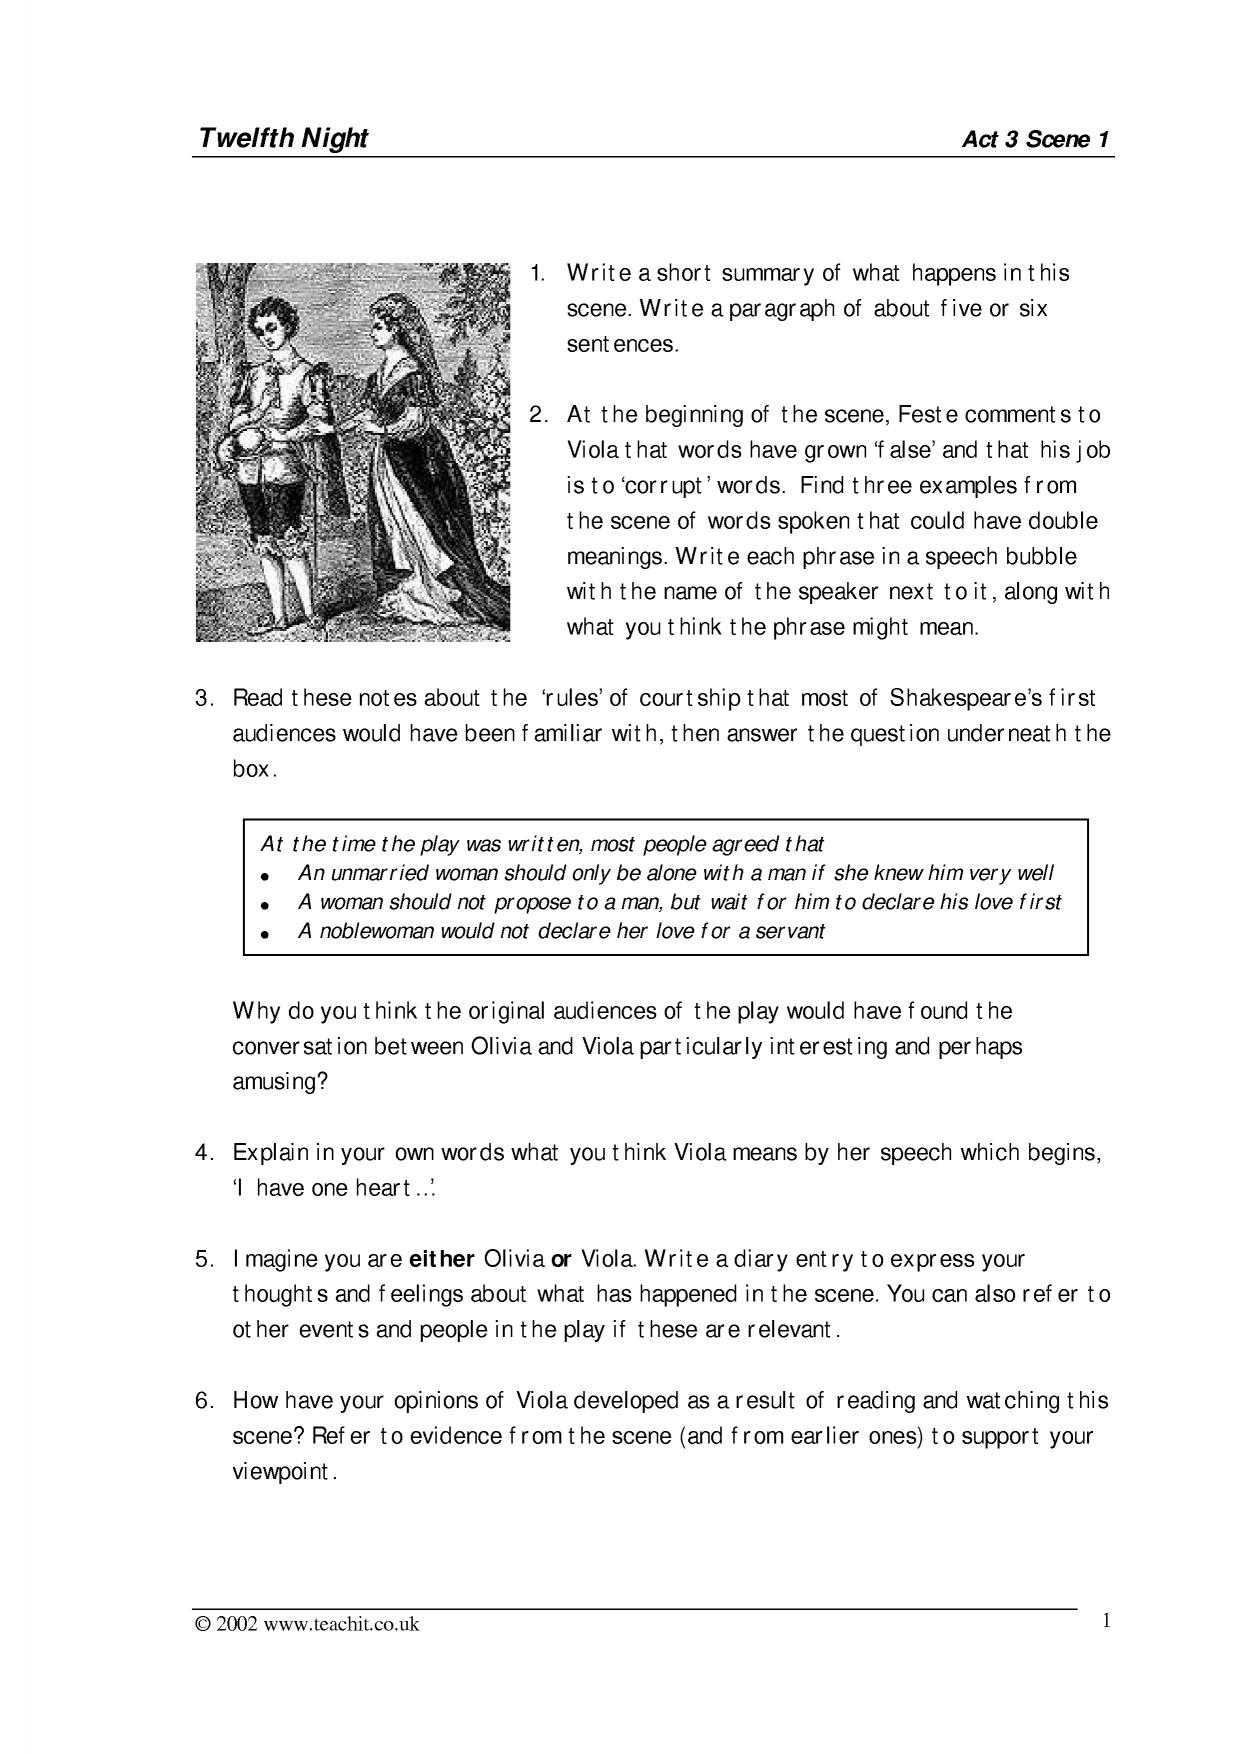 act scene study pack extension worksheet twelfth night act 3 scene 1 study pack 2 extension worksheet twelfth night act 2 scene 4 and act 3 scene 1 home page